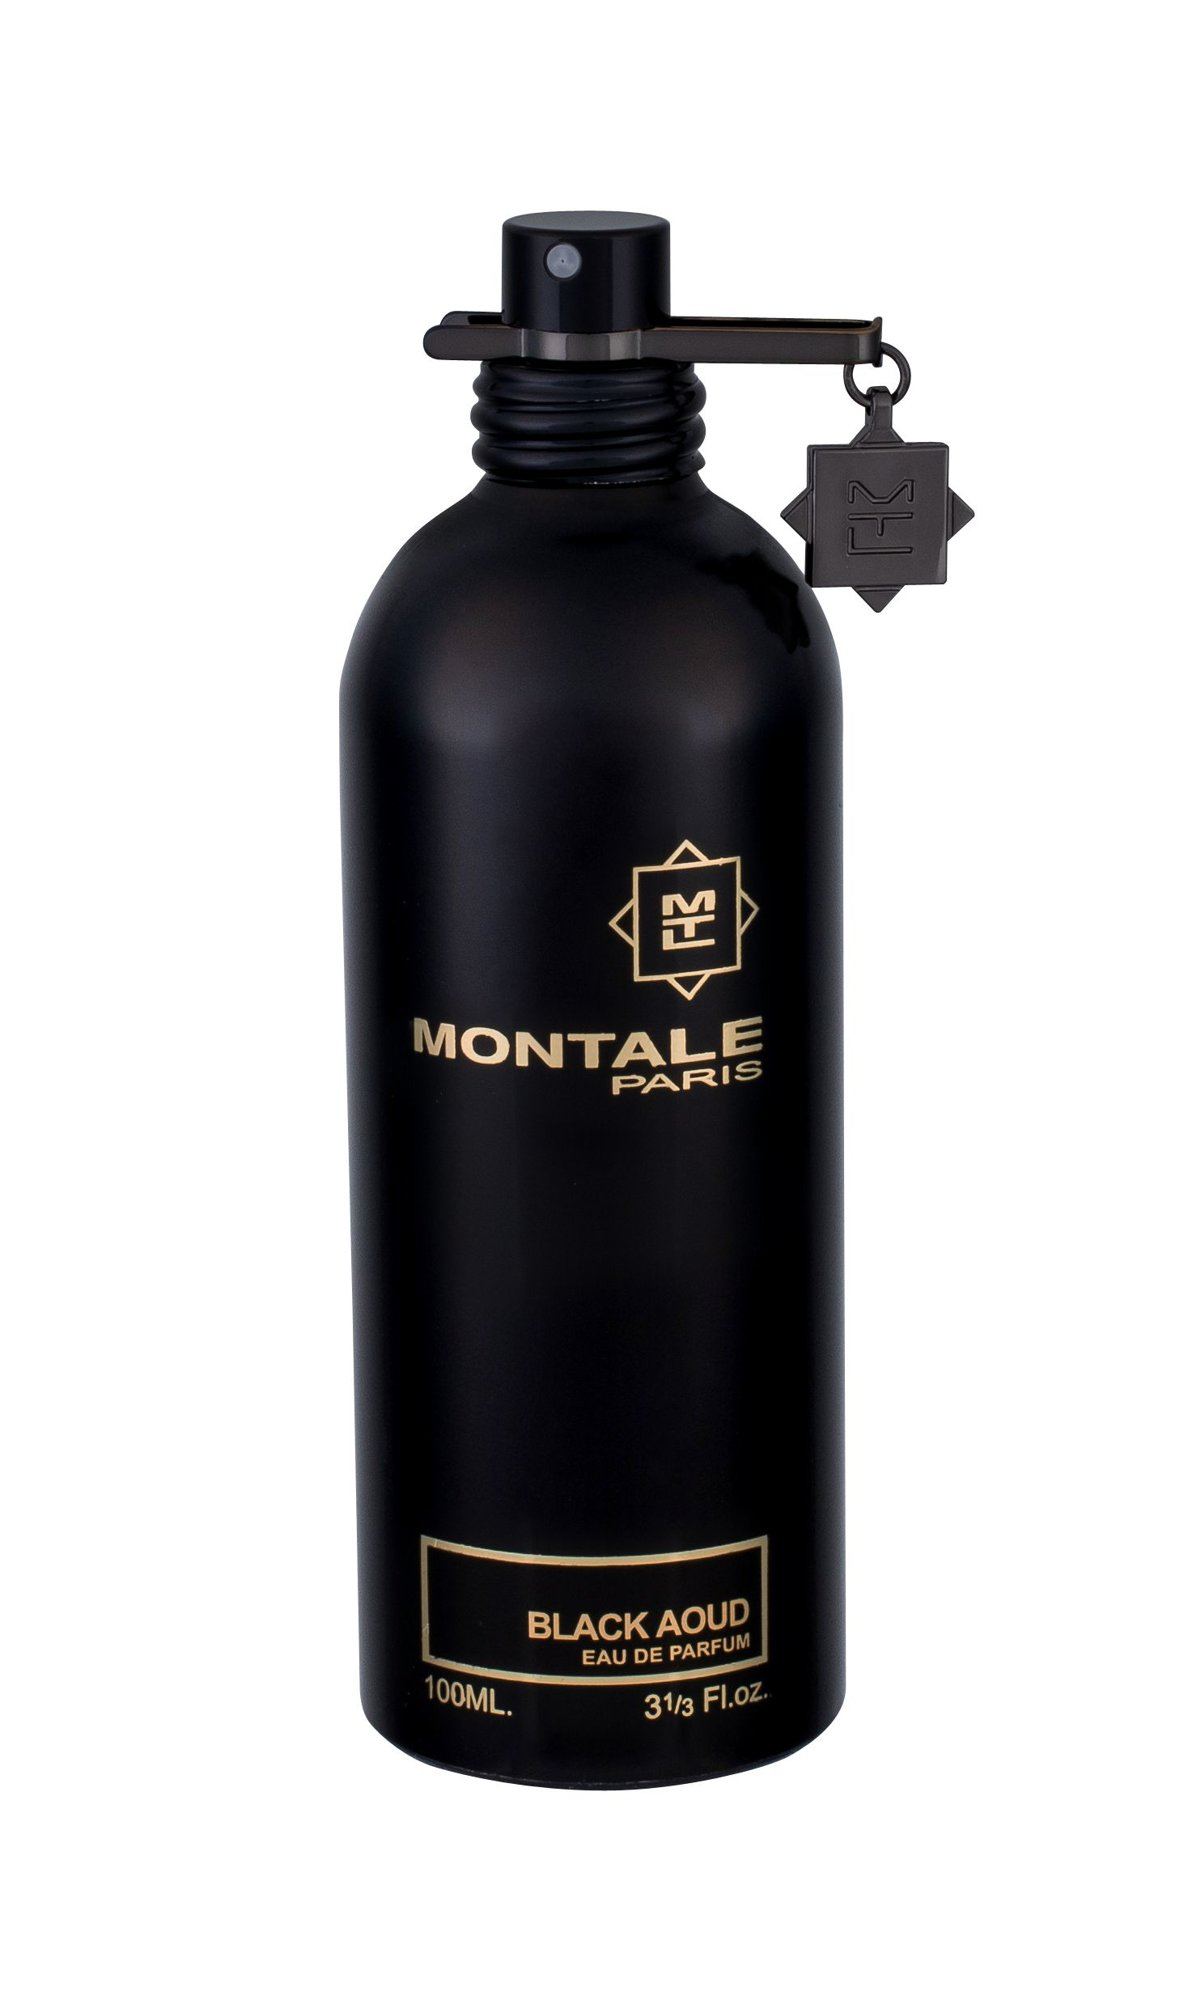 Montale Paris Black Aoud, edp 100ml